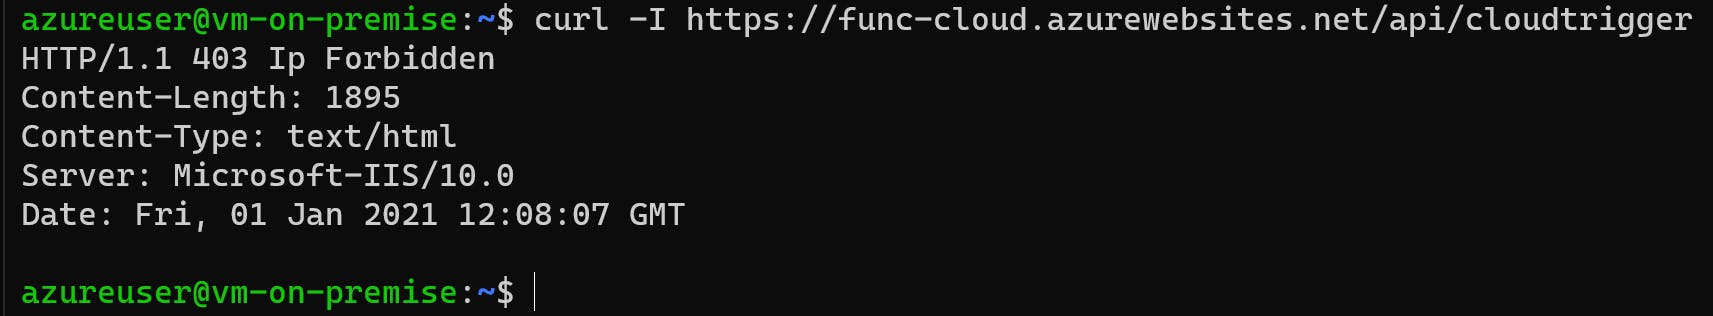 peering-function-cloud-forbidden-shell-vm-onpremise.png